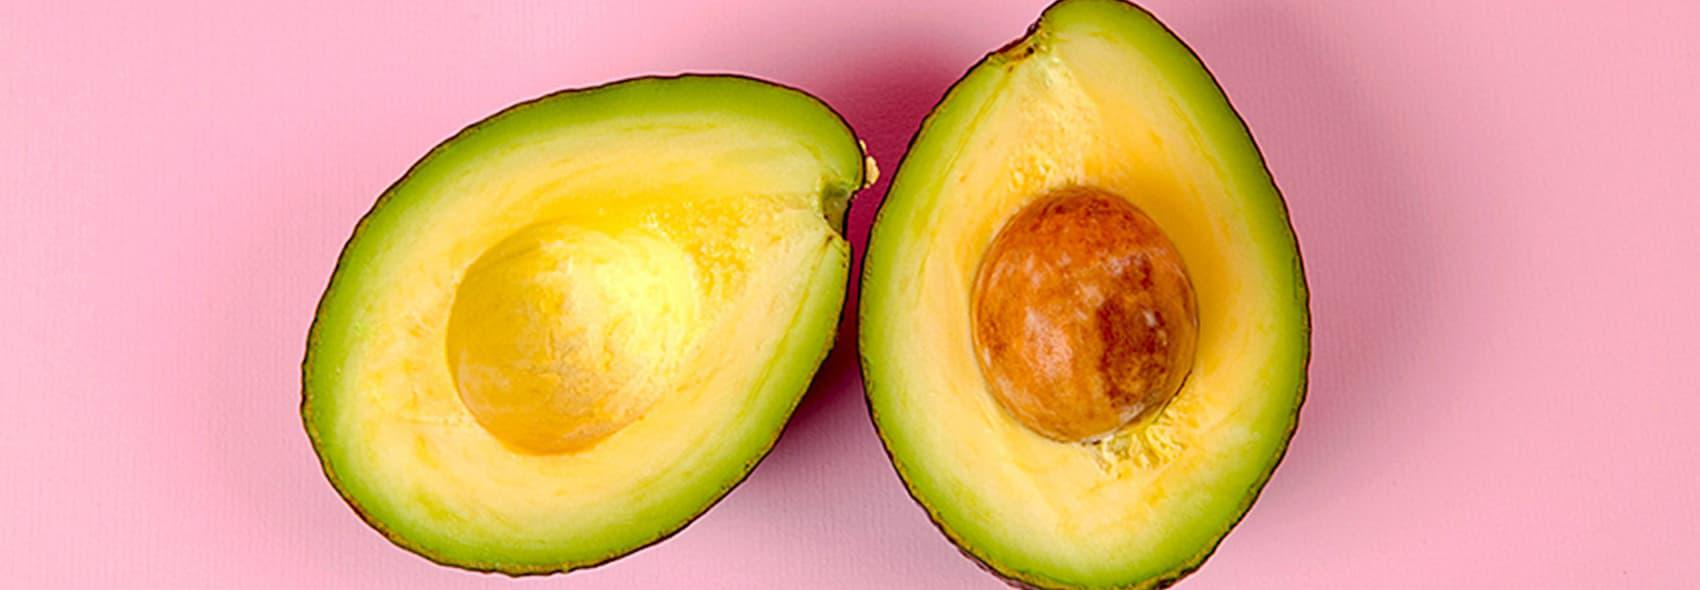 Avocado for inflammation